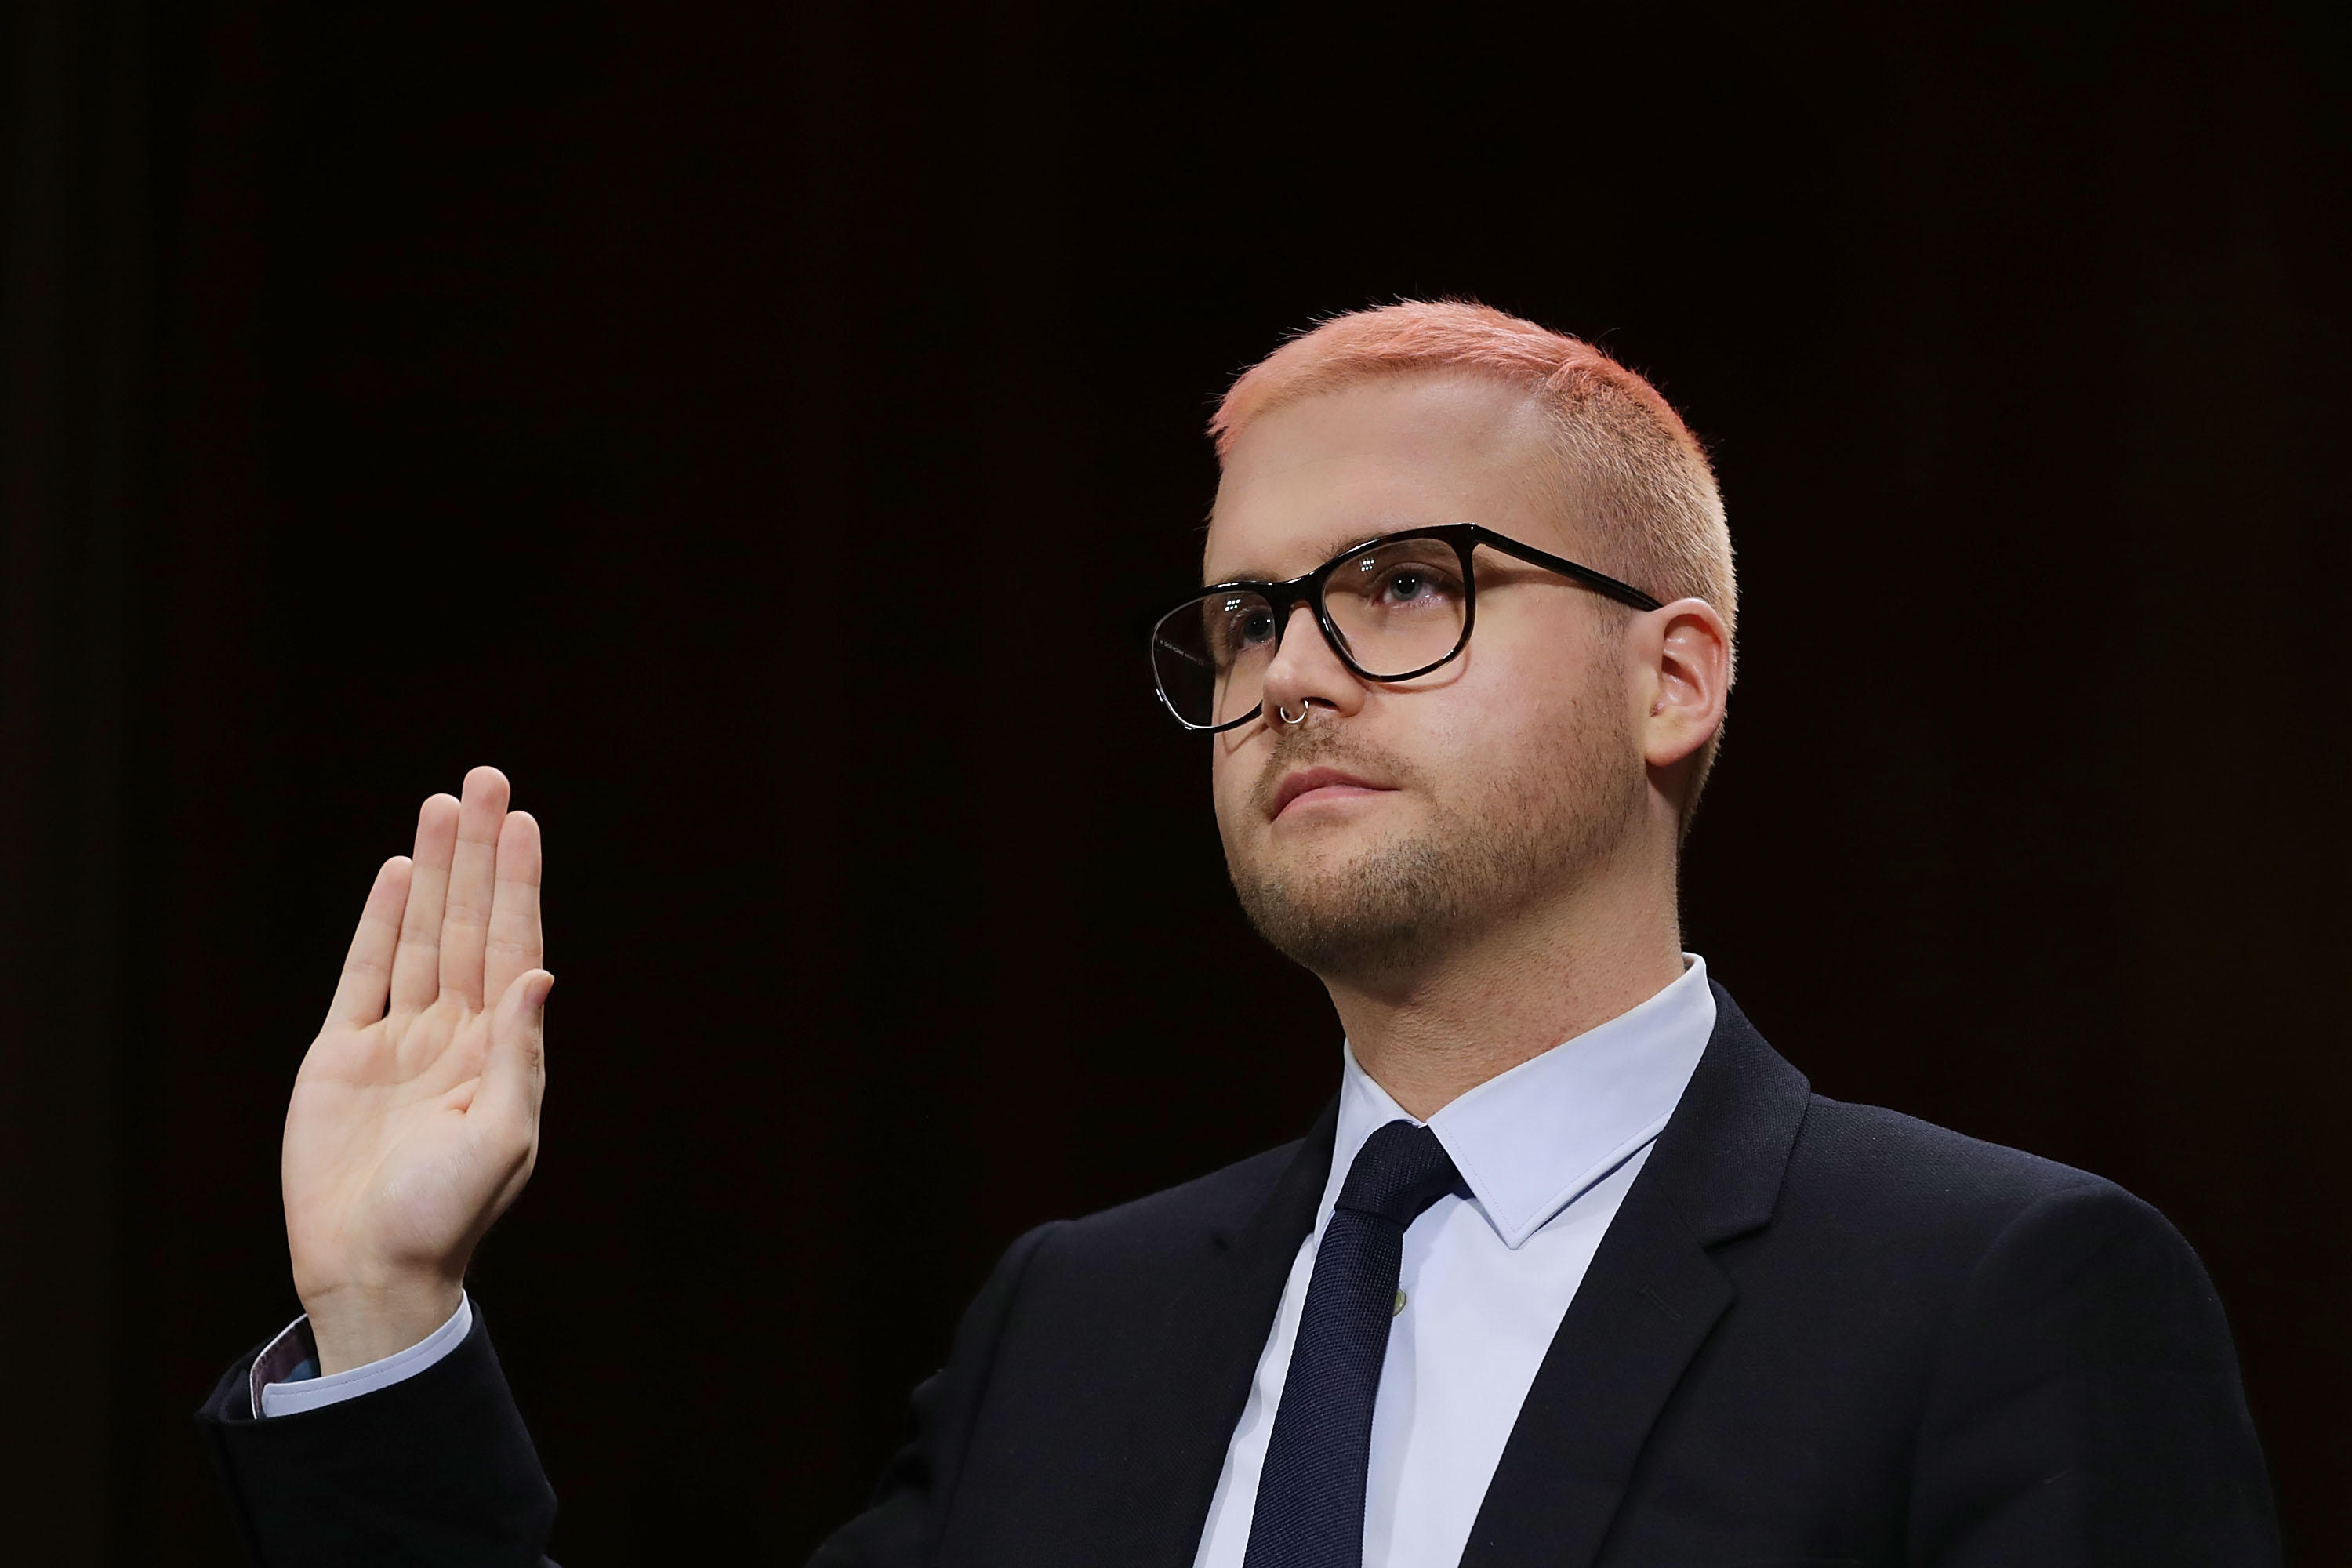 Cambridge Analytica Whistleblower Christopher Wylie Testifies To Senate Judiciary Committee On Cambridge Analytica And Data Privacy